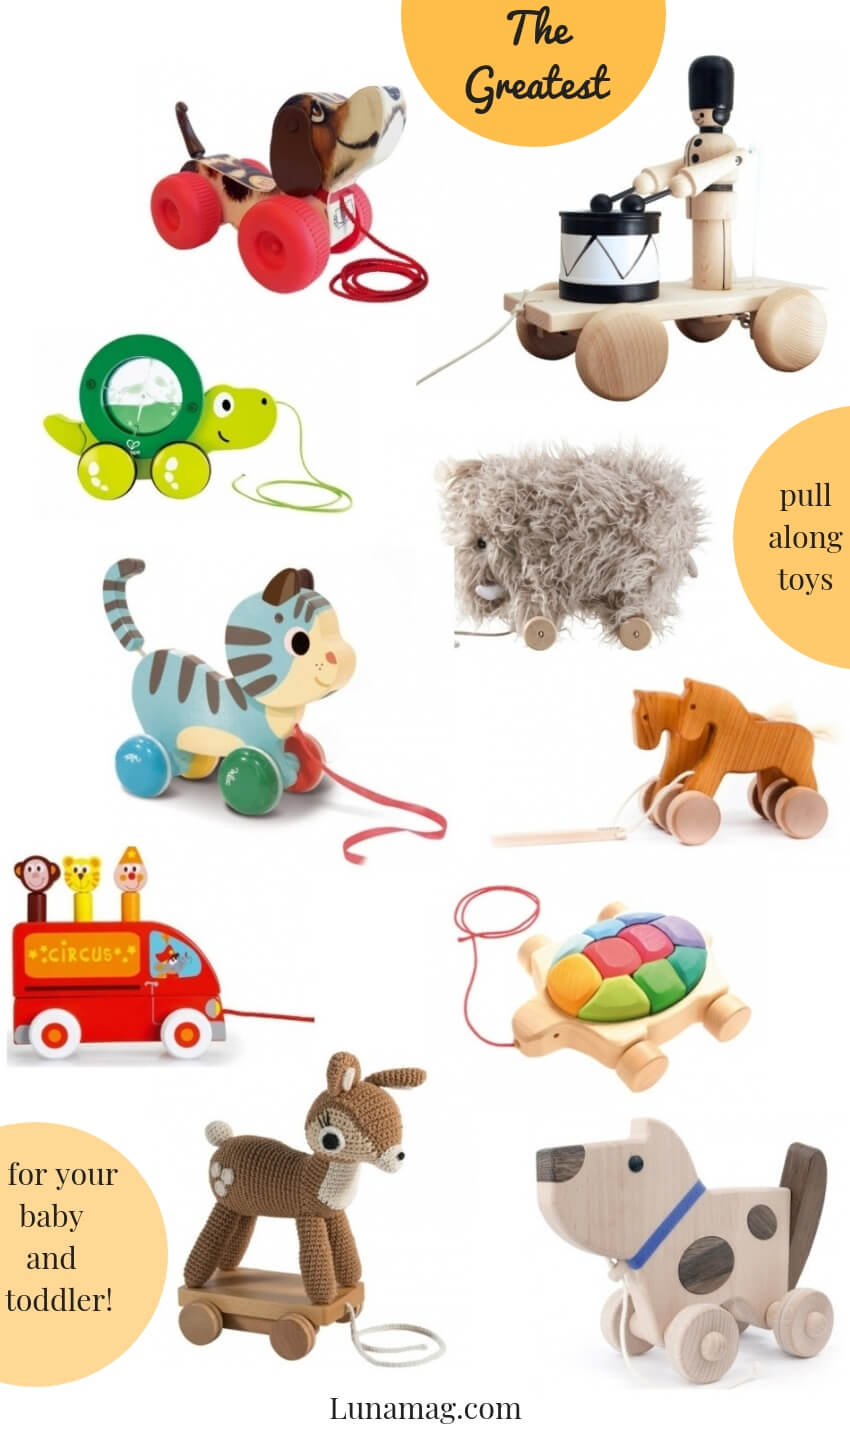 The greatest pull along toys for your baby and toddler